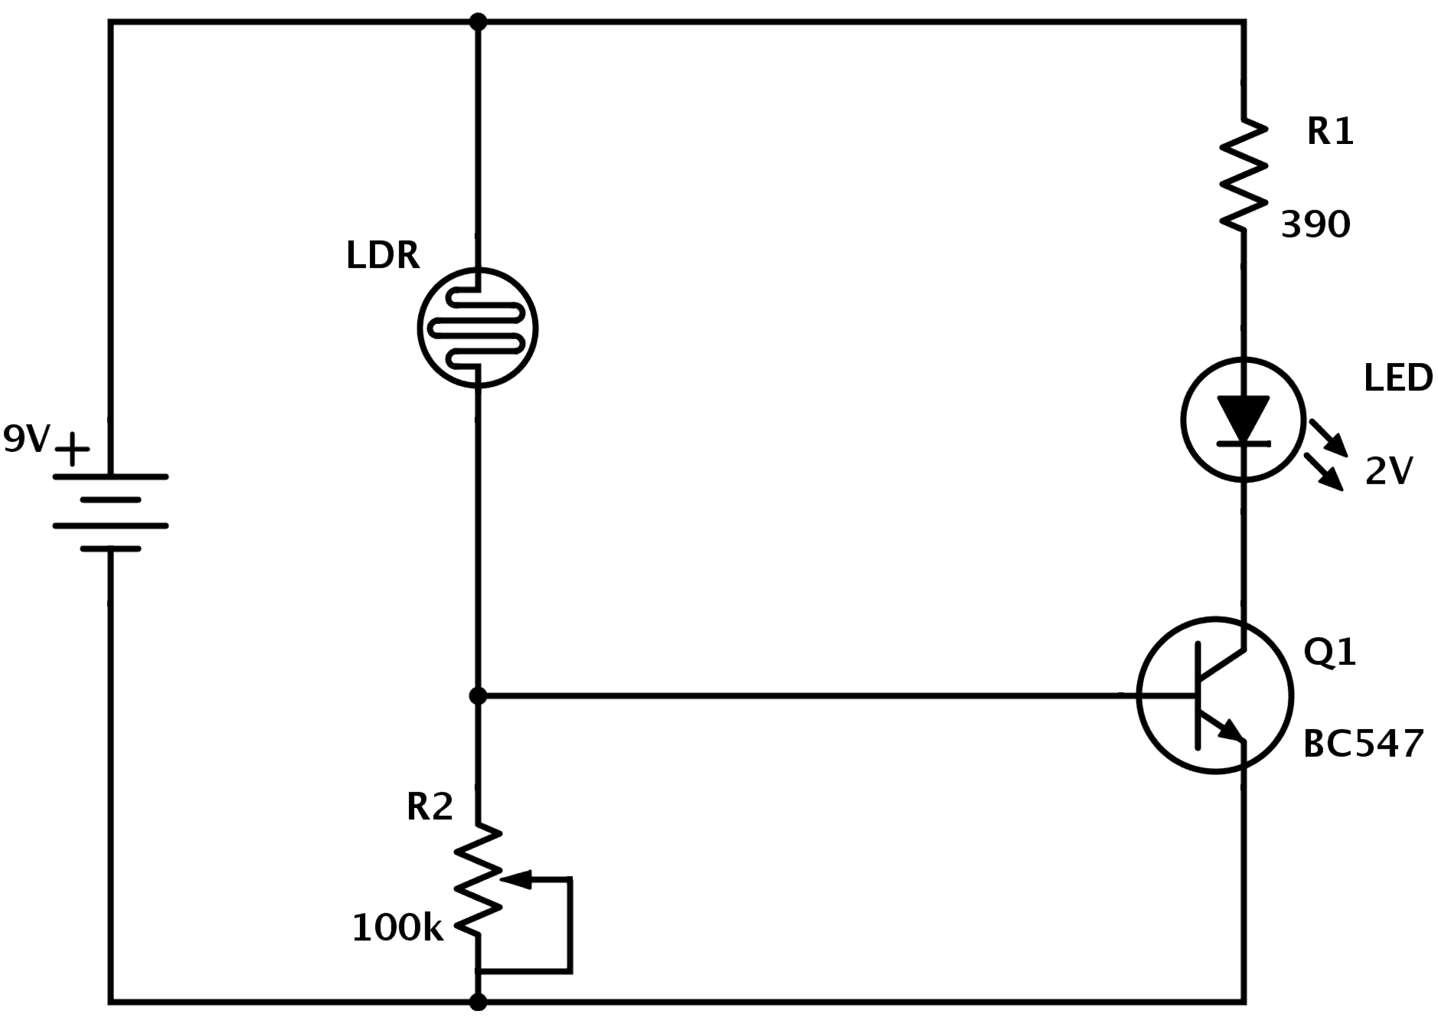 hight resolution of e schematic wiring diagram wiring diagram name schematic wiring diagram schematic wiring diagram